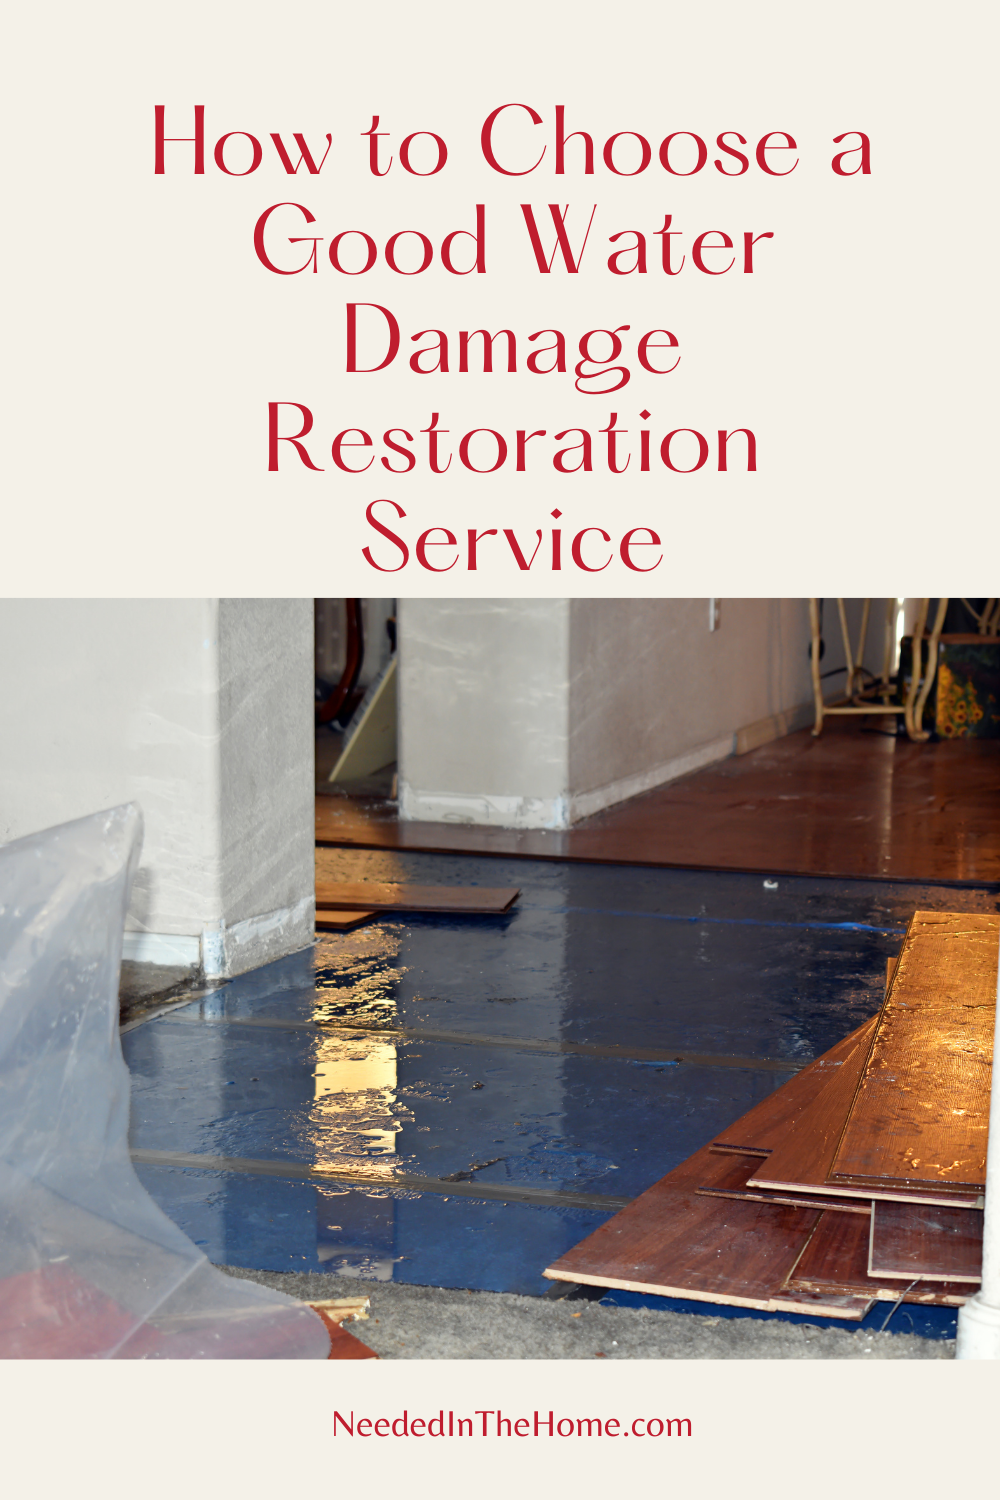 pinterest-pin-description how to choose a good water damage restoration service wooden tile floor water damaged flooding neededinthehome